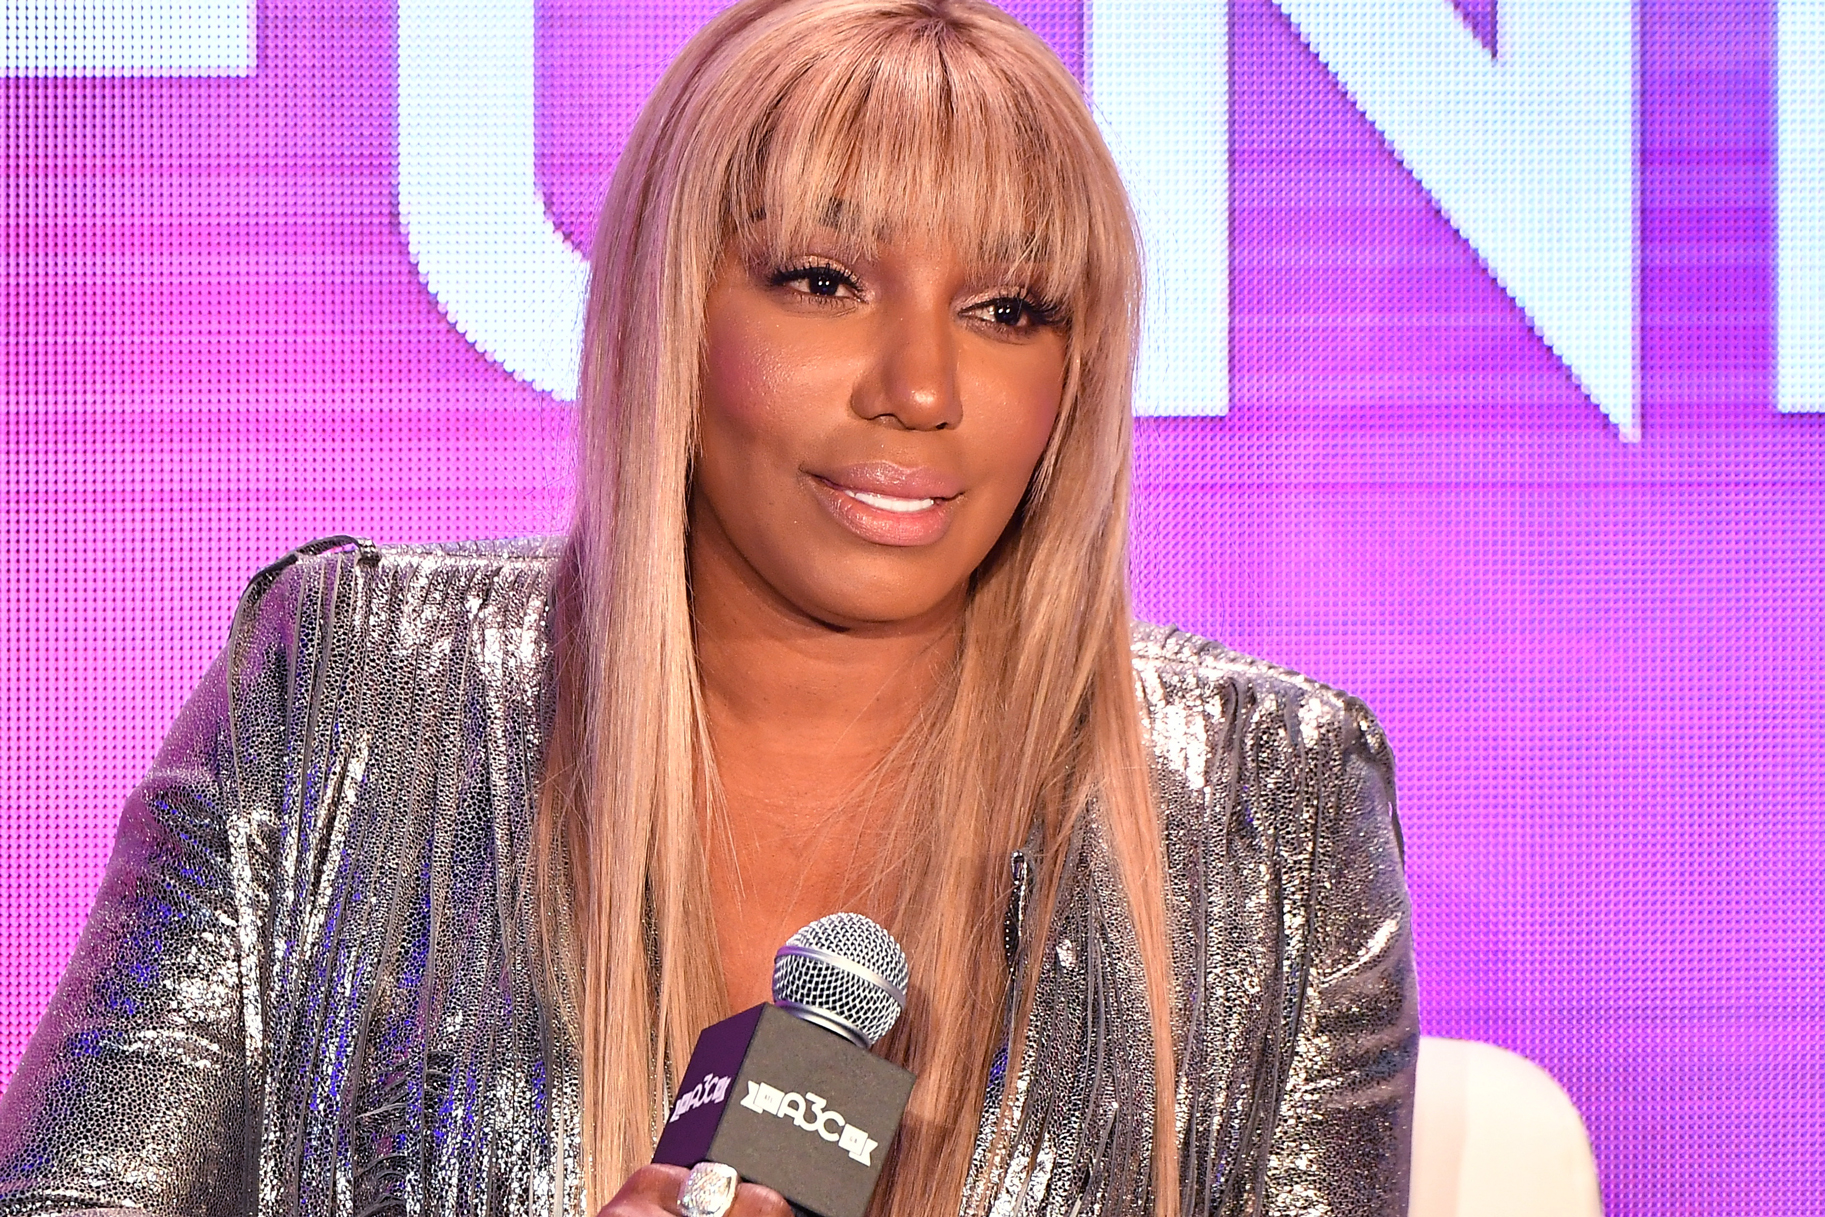 NeNe Leakes Mentions Michelle Obama And More Famous Ladies In Her Rant, Defending The 'Right' Of Public Figures To Wear The Same Dress Multiple Times - See The Photo & Message